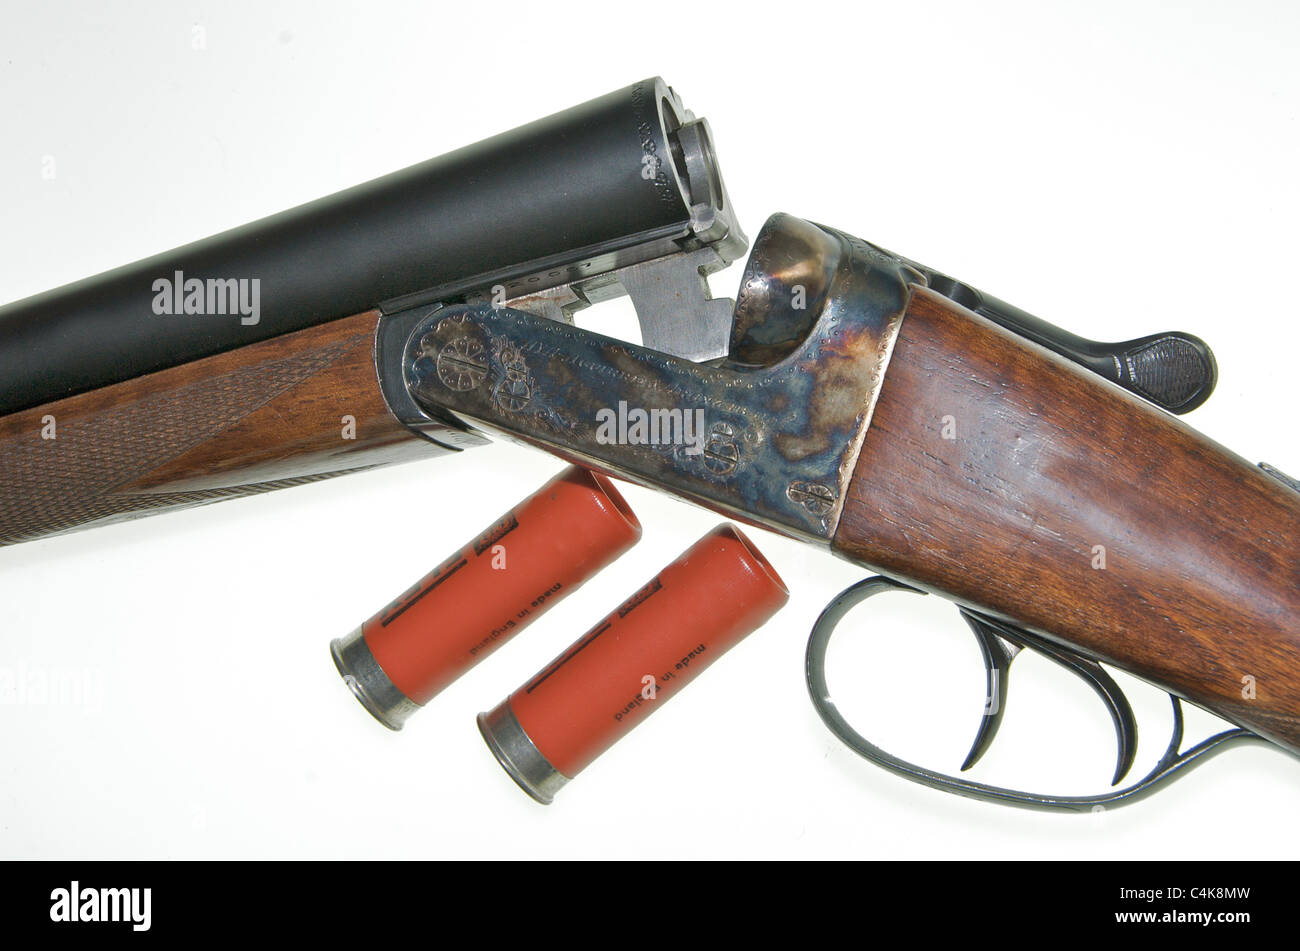 A 12 gauge bore shotgun. This is an AYA No 4 Boxlock side-by